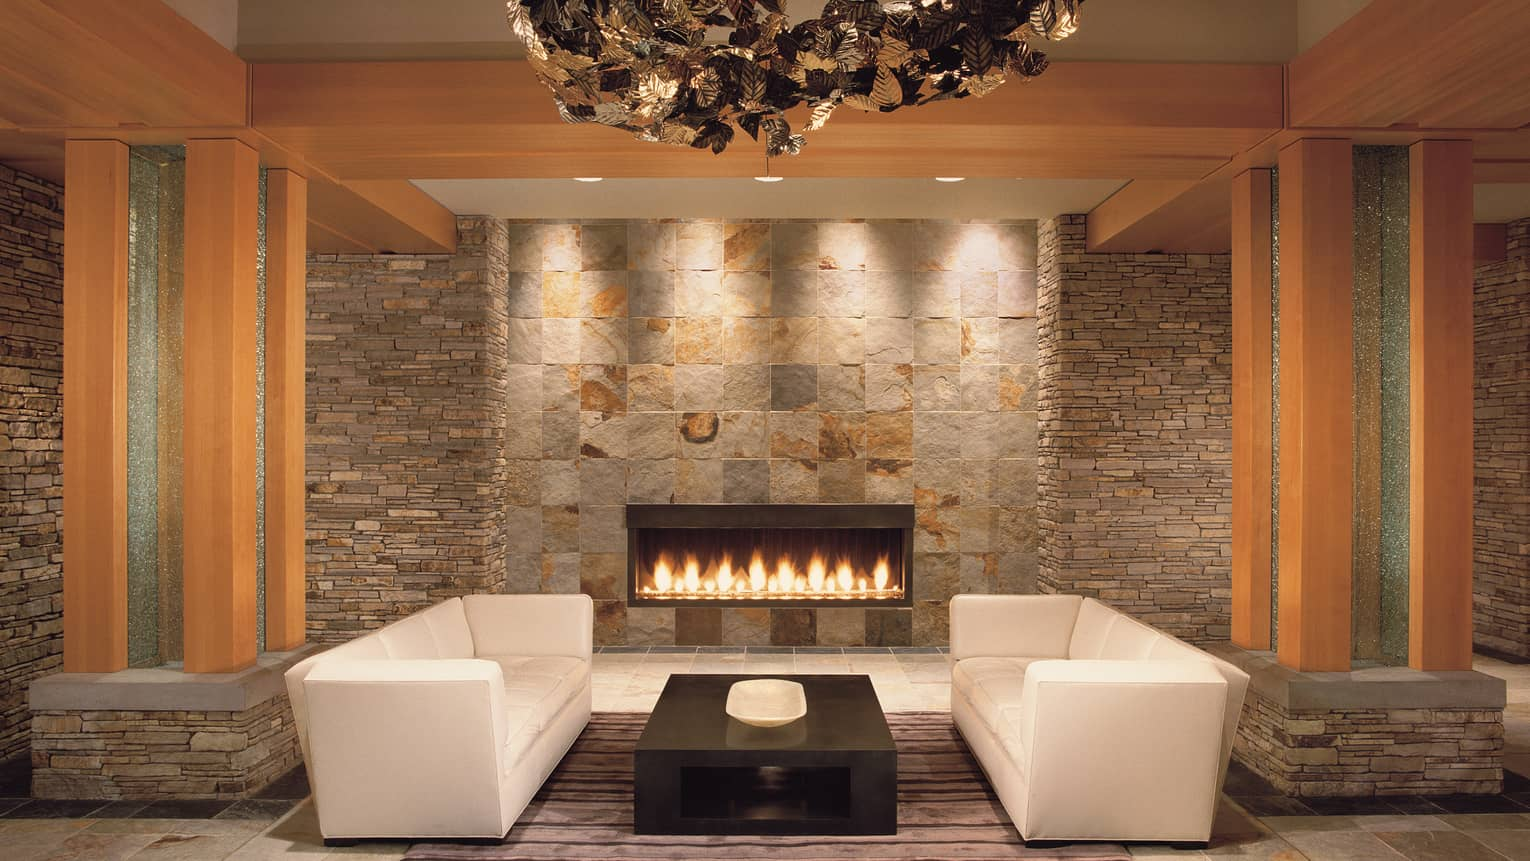 Two white sofas, coffee table by modern gas fireplace on stone wall under artistic chandelier